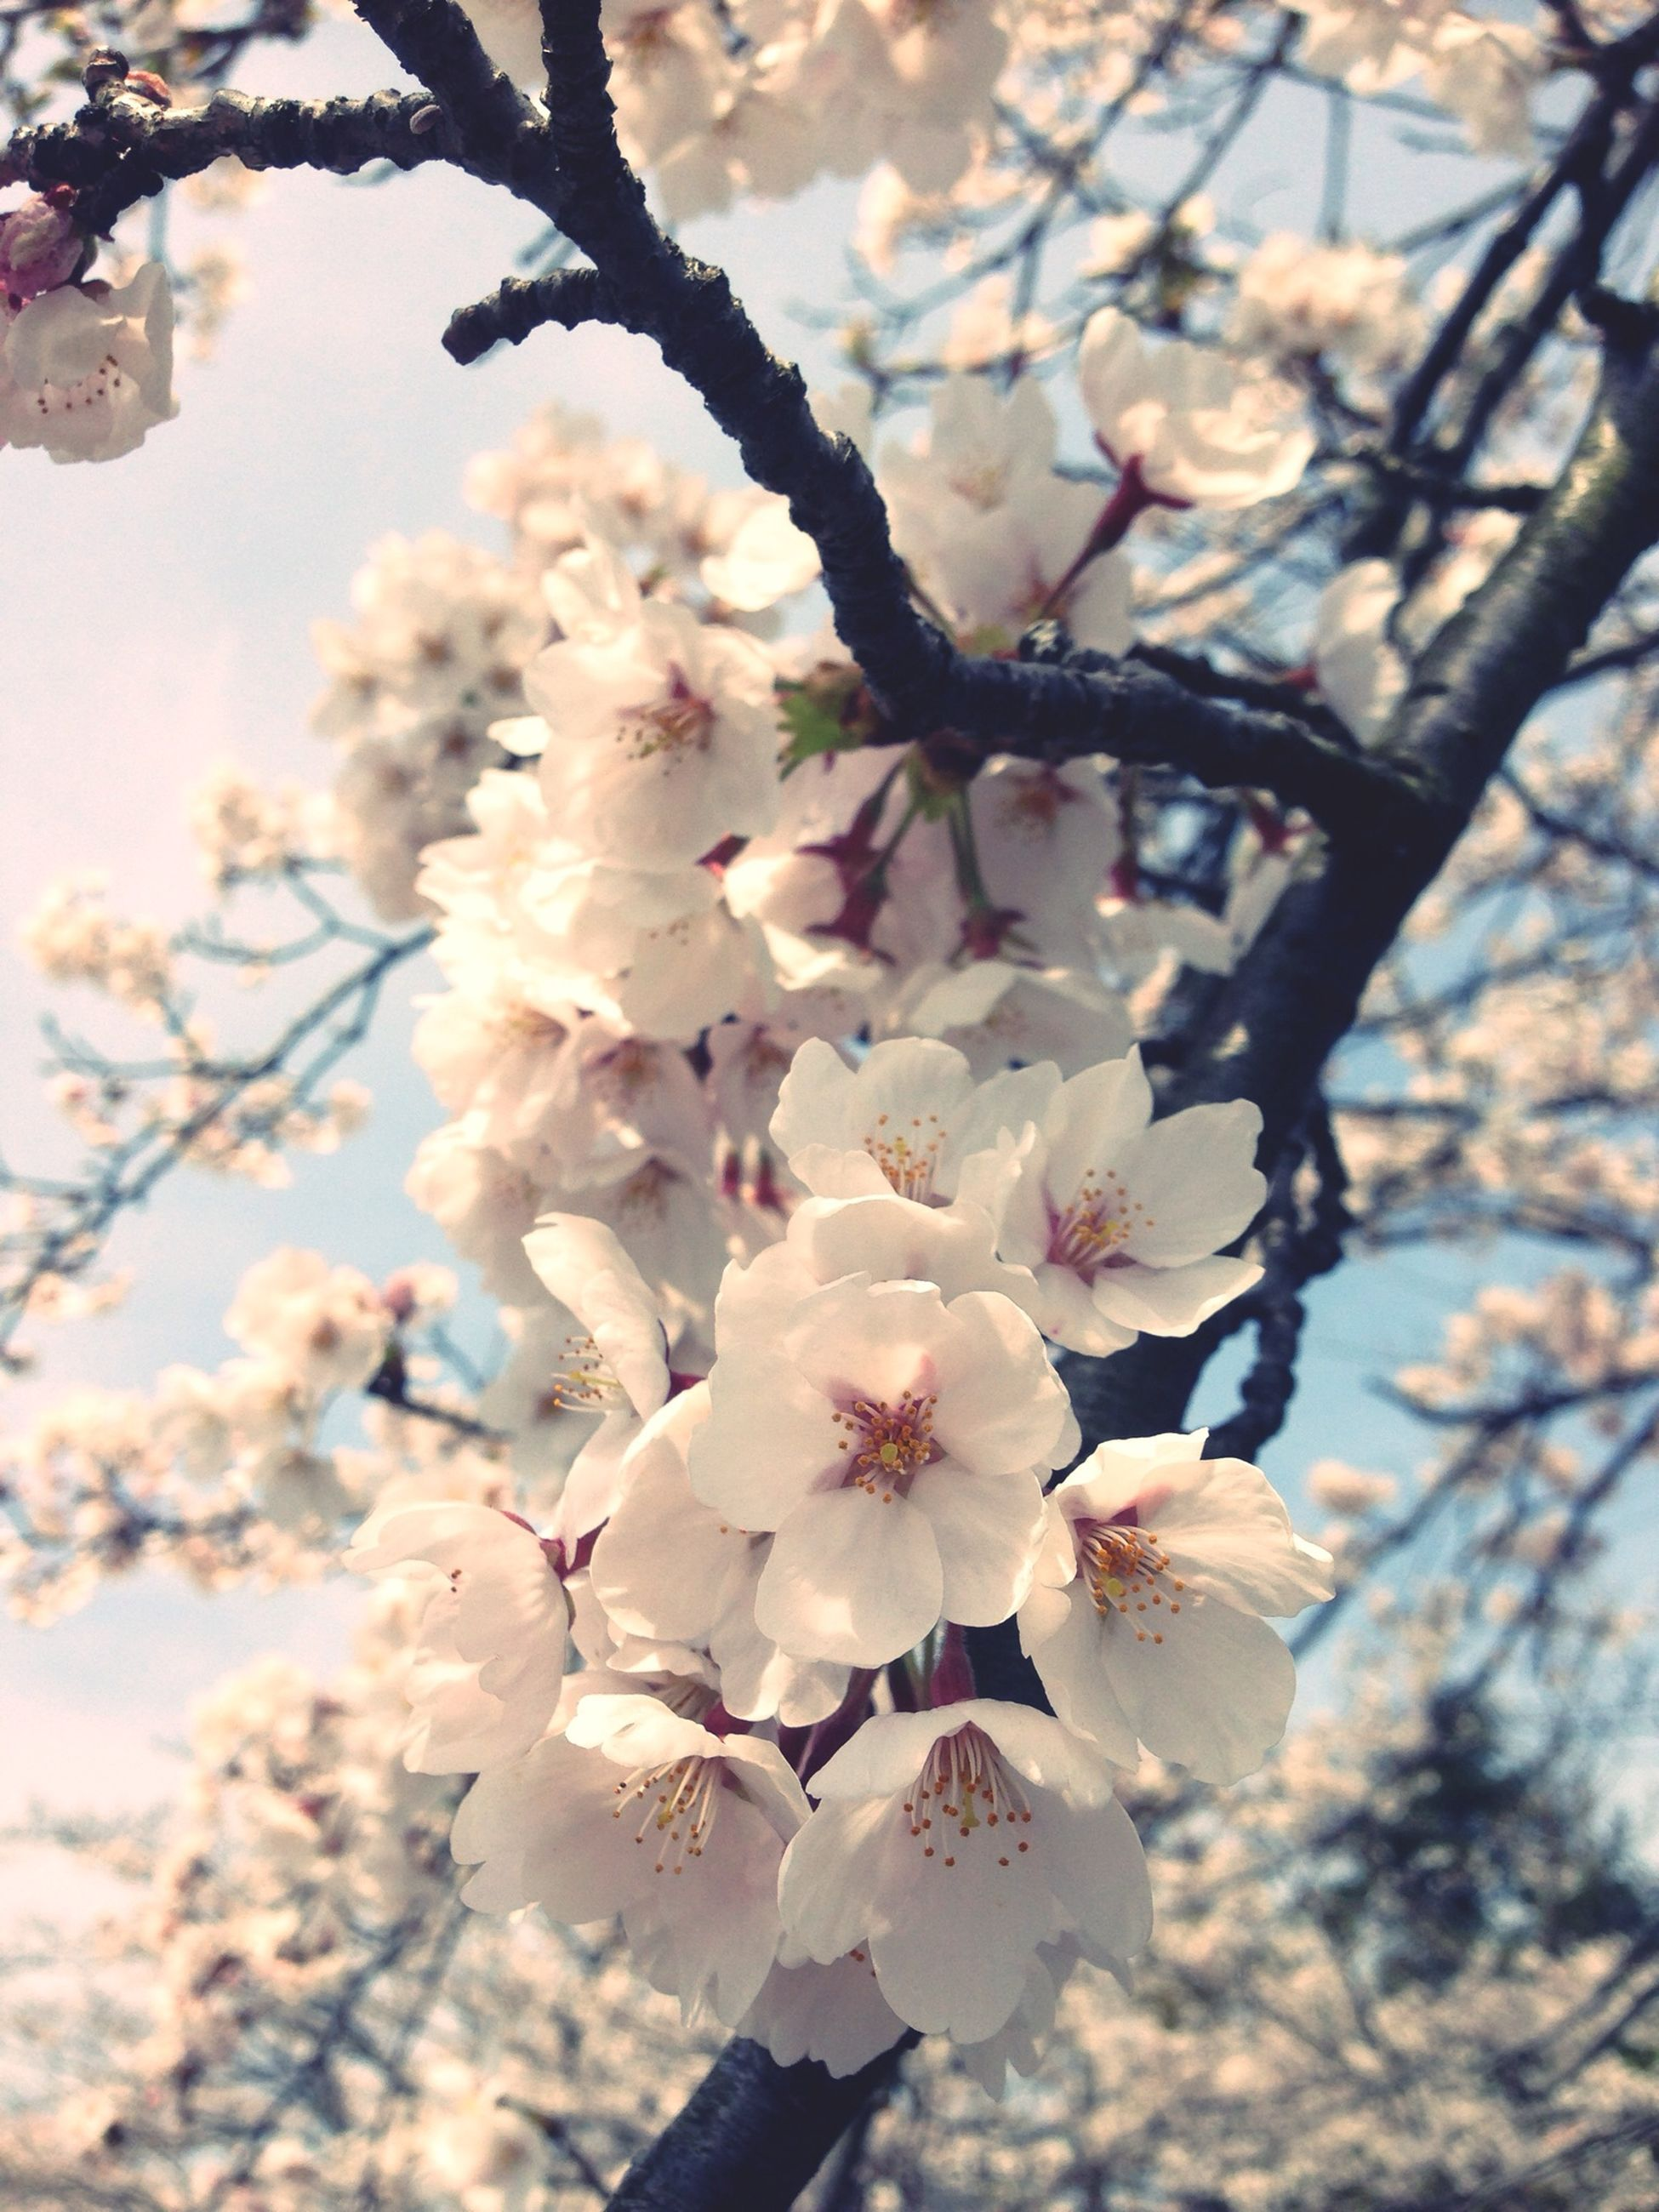 flower, branch, tree, freshness, cherry blossom, growth, cherry tree, low angle view, fragility, beauty in nature, blossom, nature, fruit tree, focus on foreground, twig, springtime, close-up, in bloom, petal, apple tree